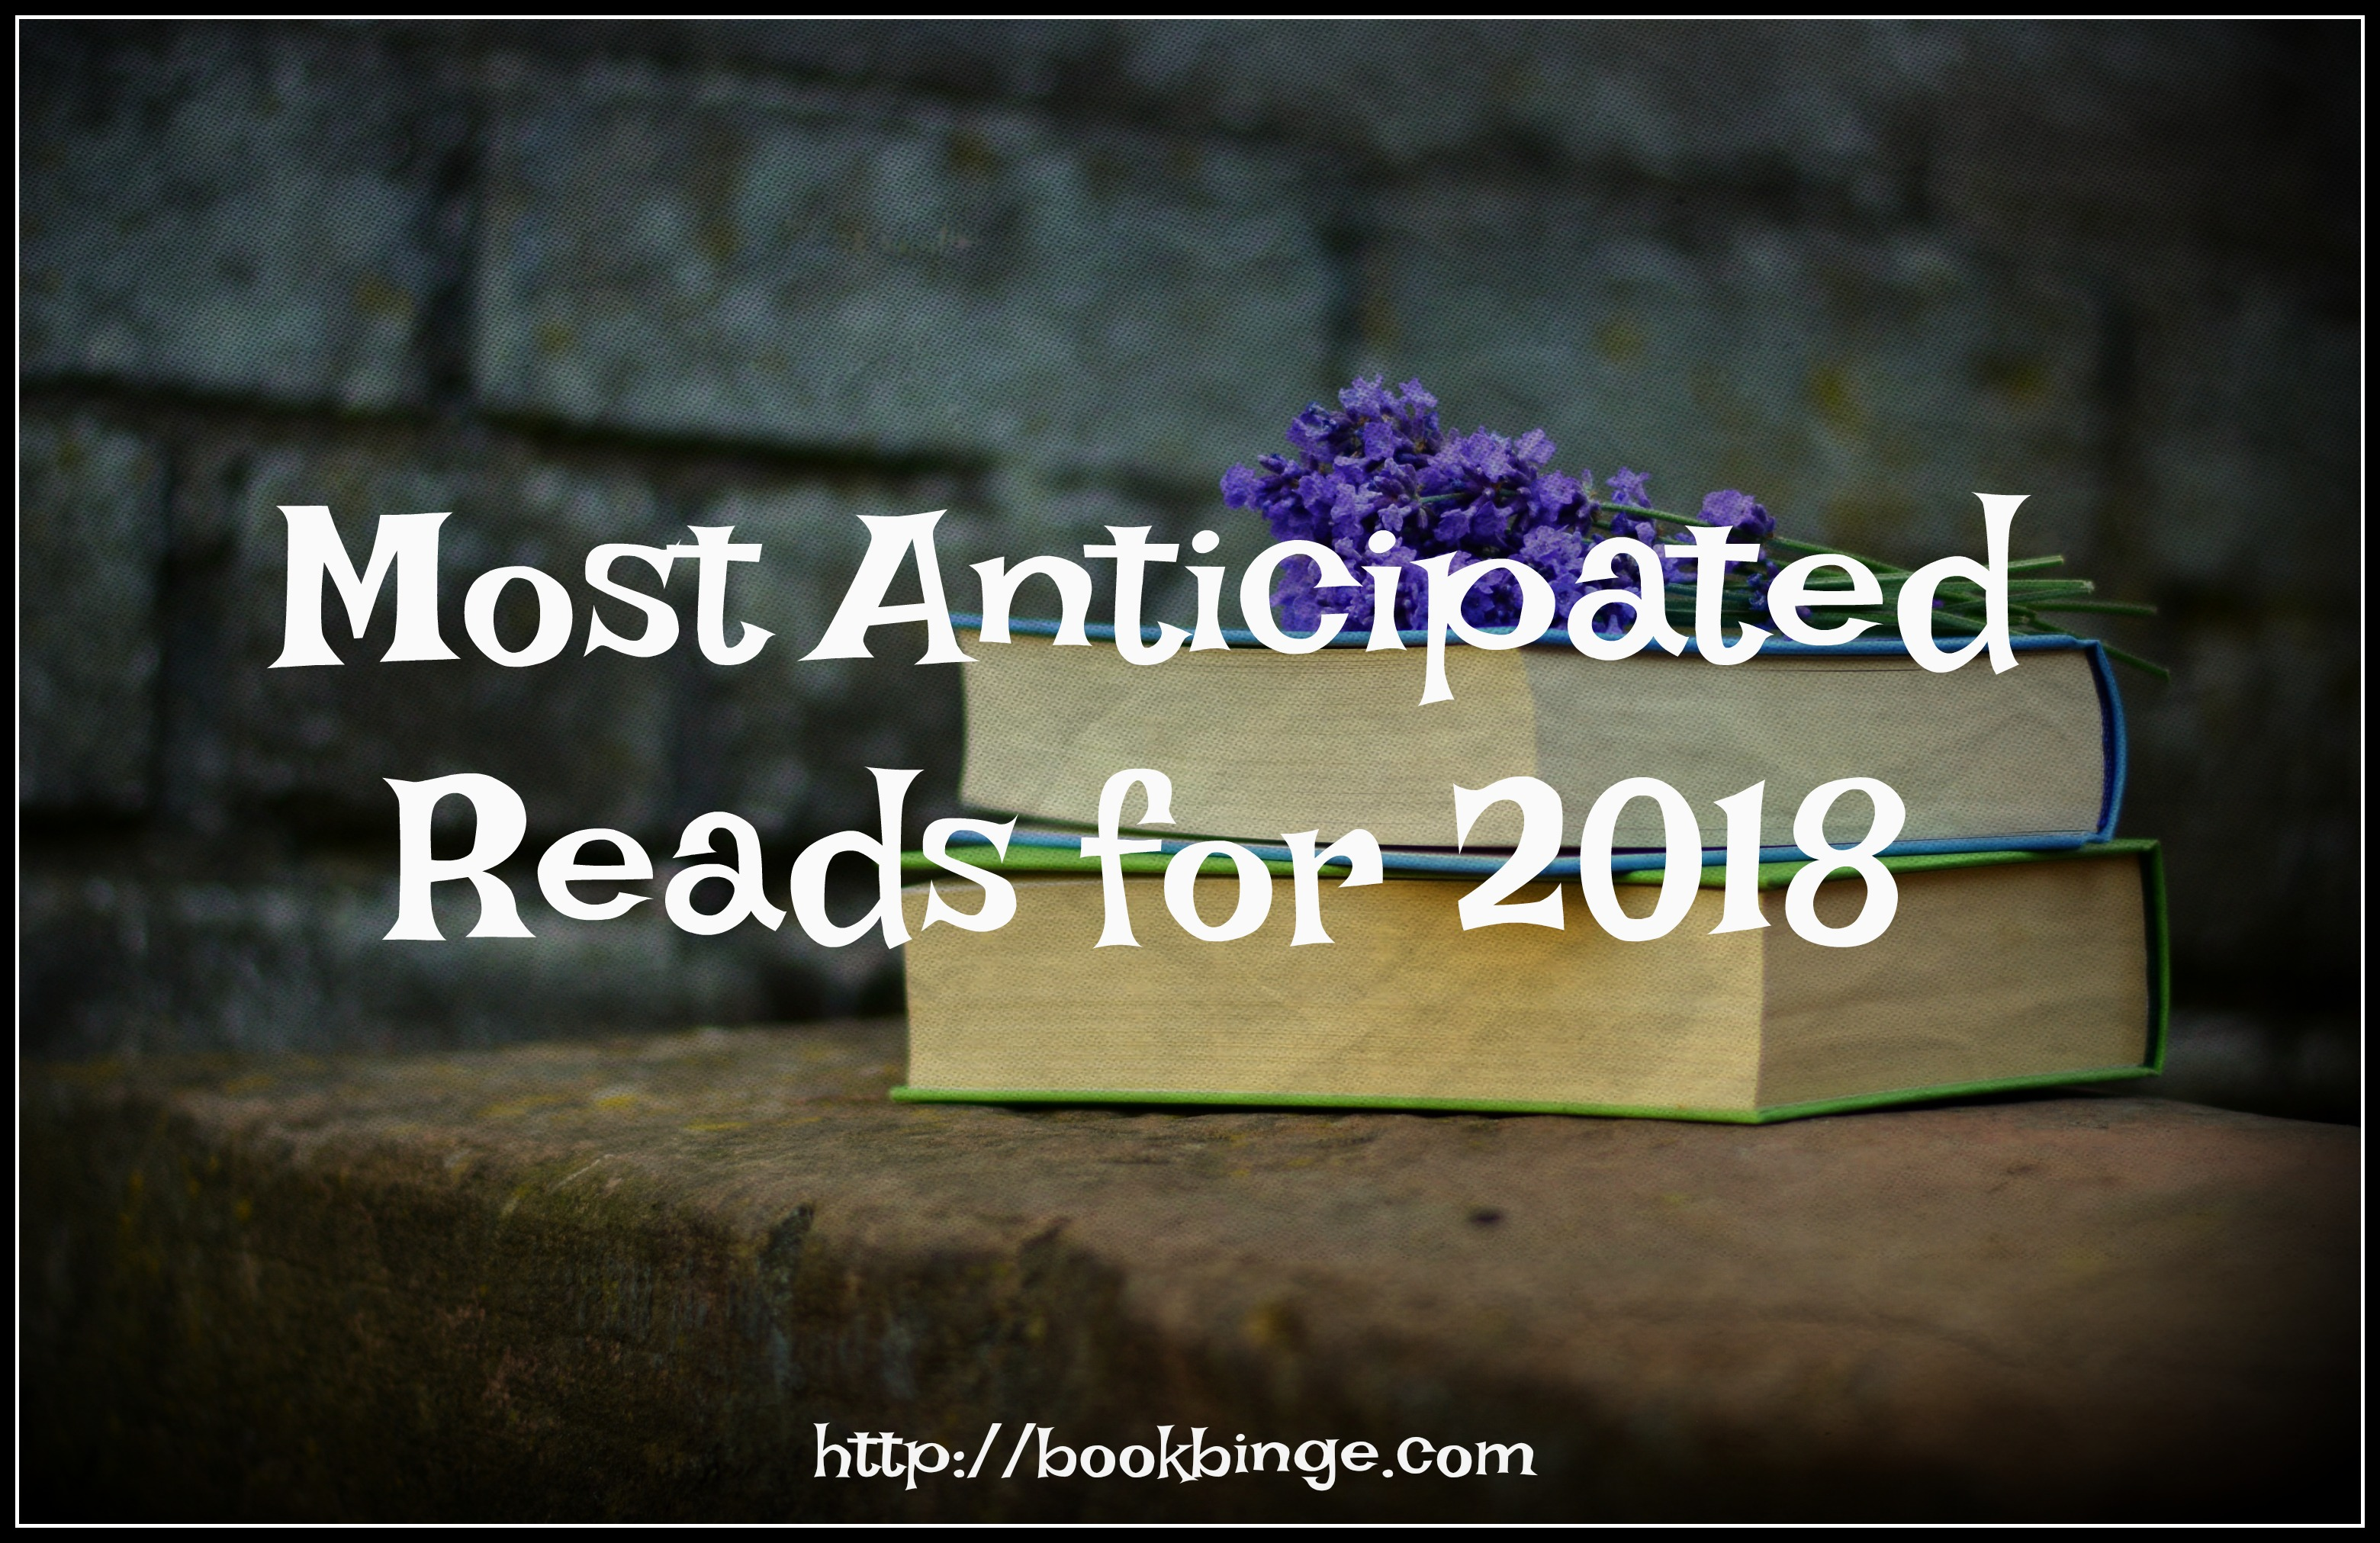 Our Most Anticipated Reads for 2018